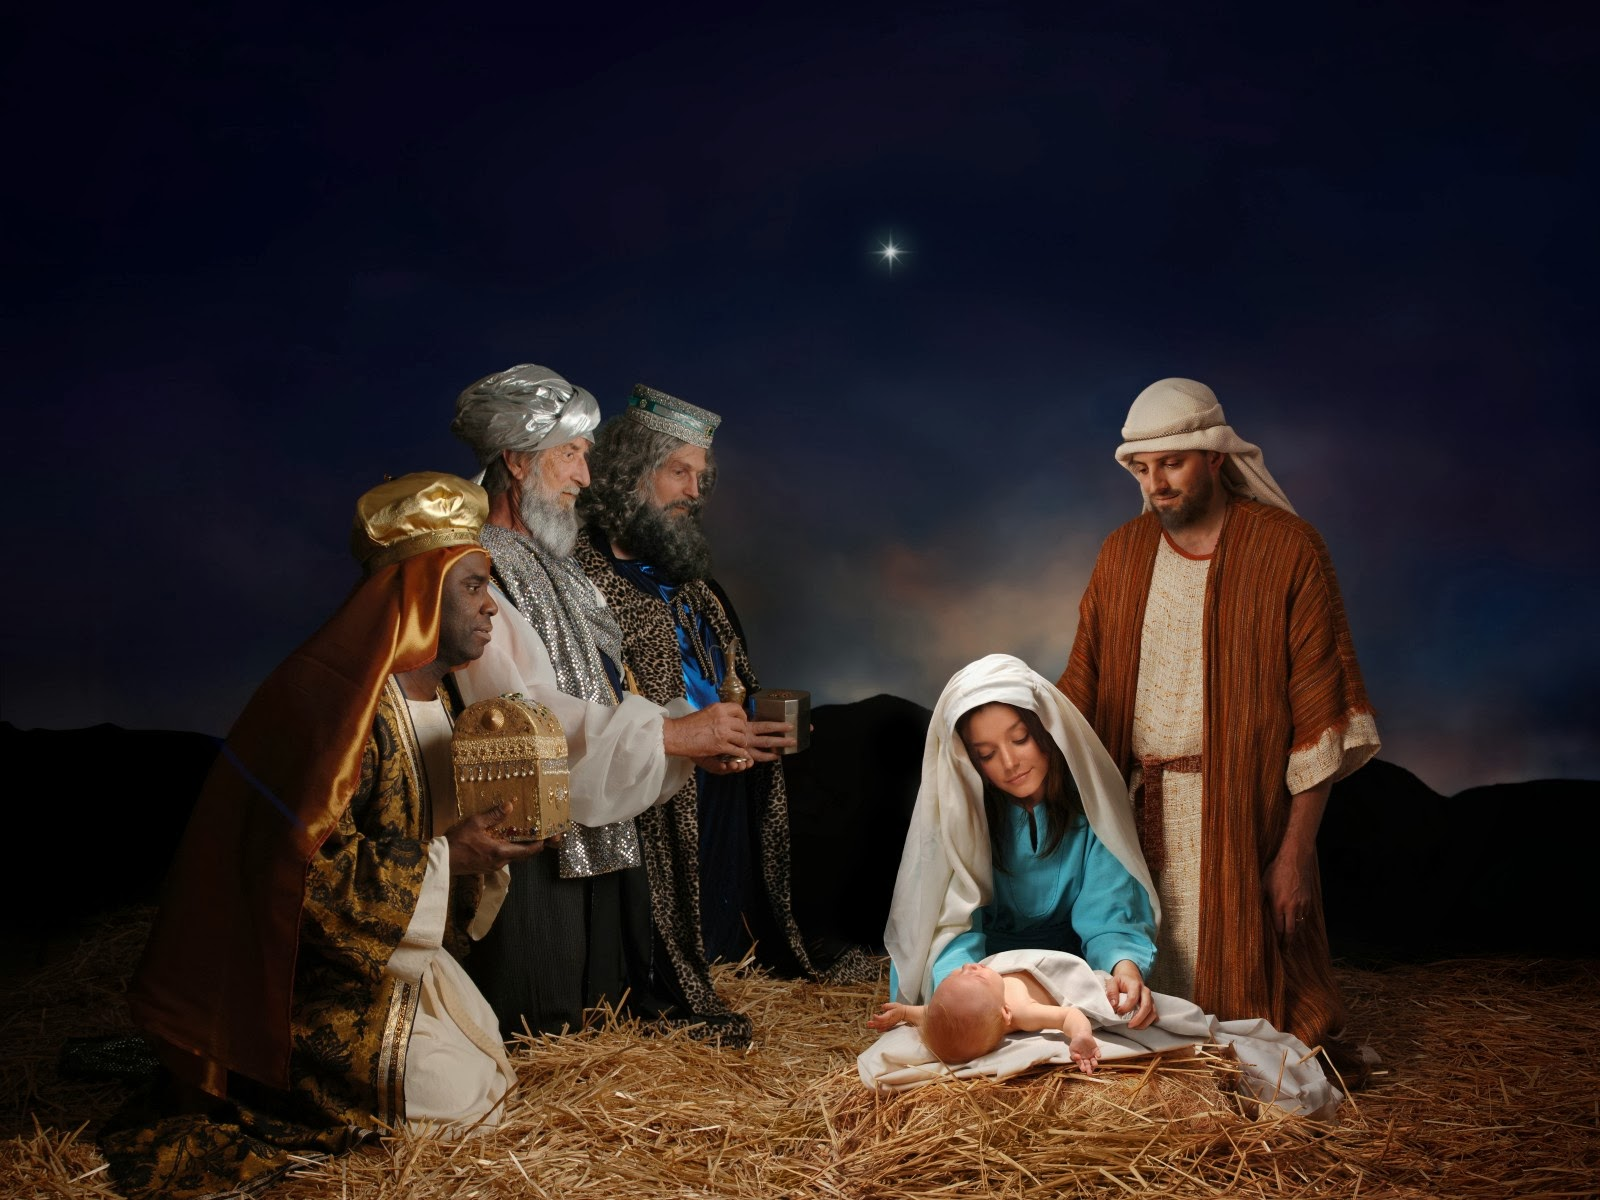 Download image imagenes de nacimiento jesus pc android iphone and